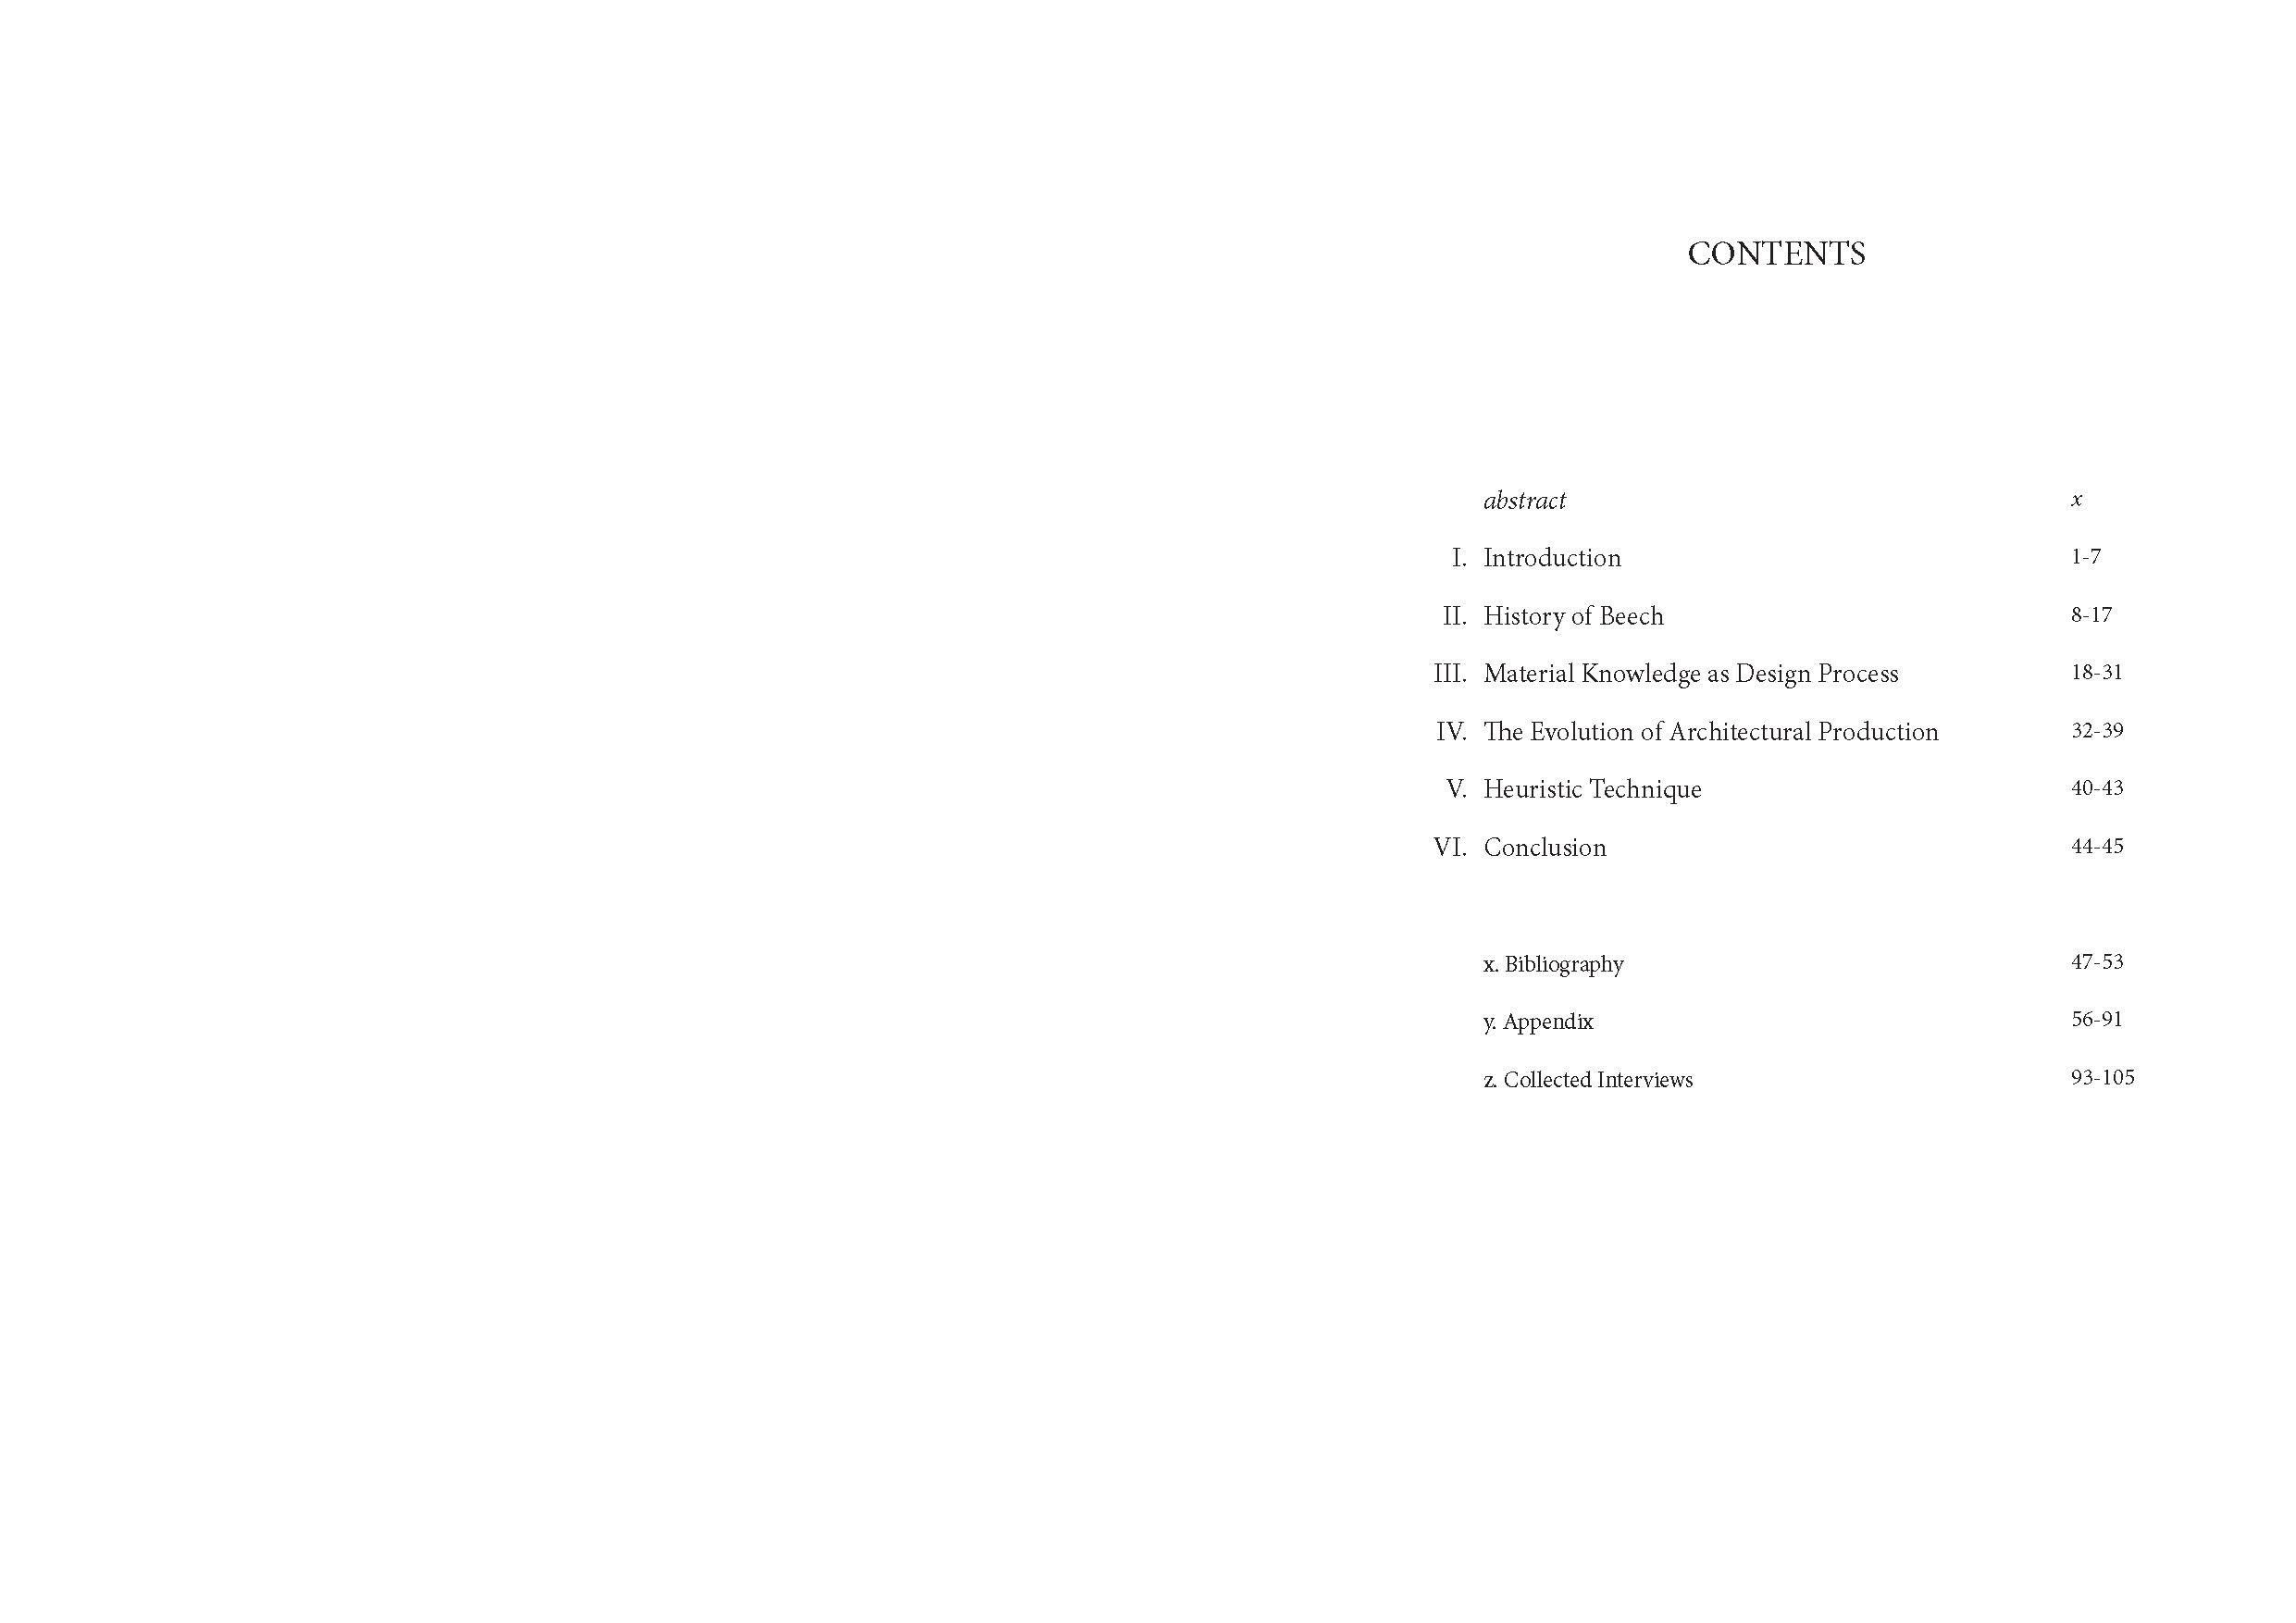 130131_Material SuccessionFORSUBMITTAL_Page_03.jpg